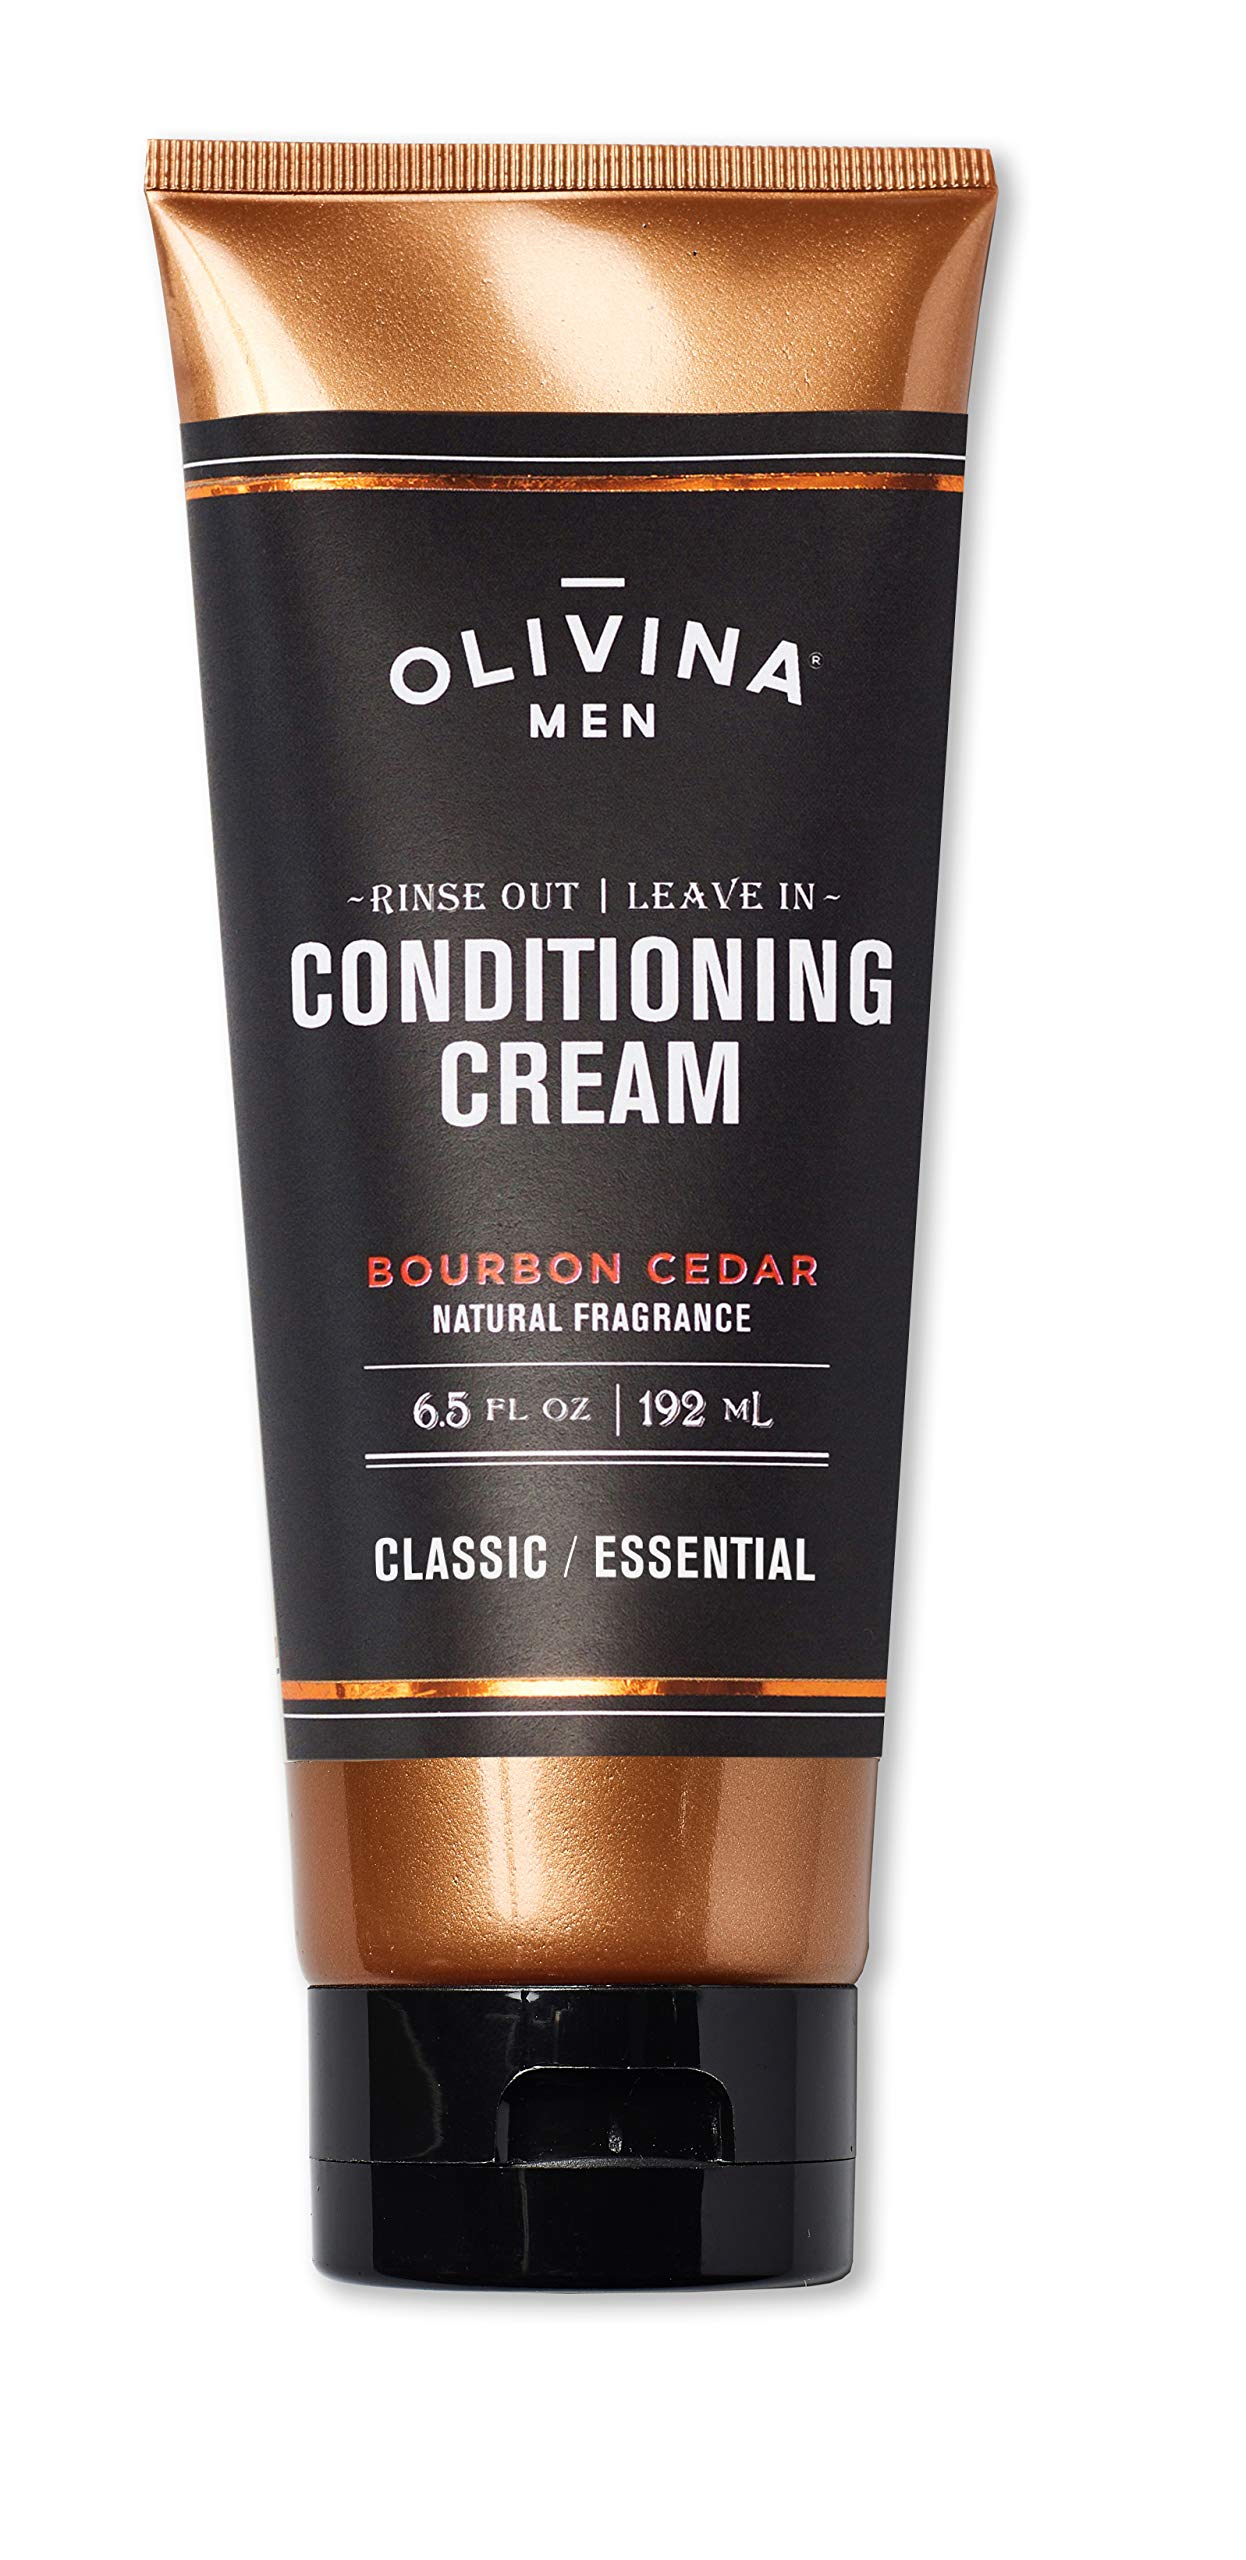 Olivina Men Rinse Out | Leave In Conditioner Cream, Bourbon Cedar, 6.5 Fluid Ounce by olivina men